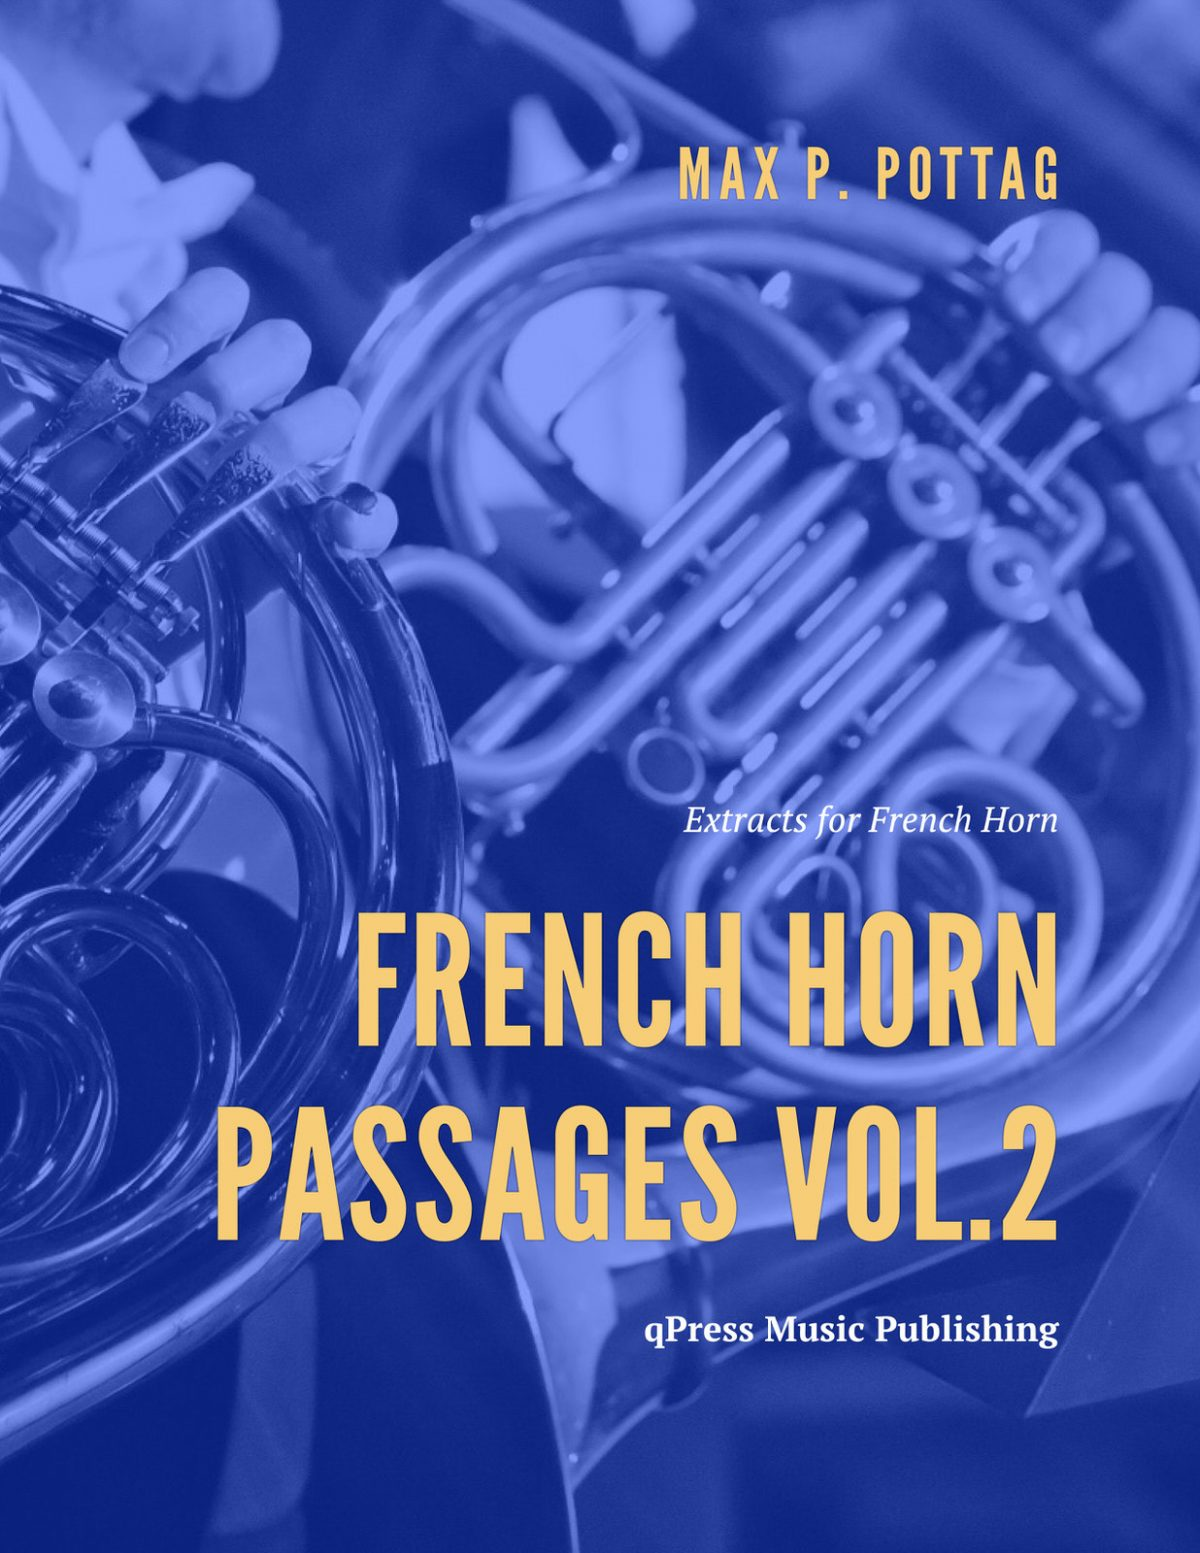 Pottag, French Horn Passages Vol 2